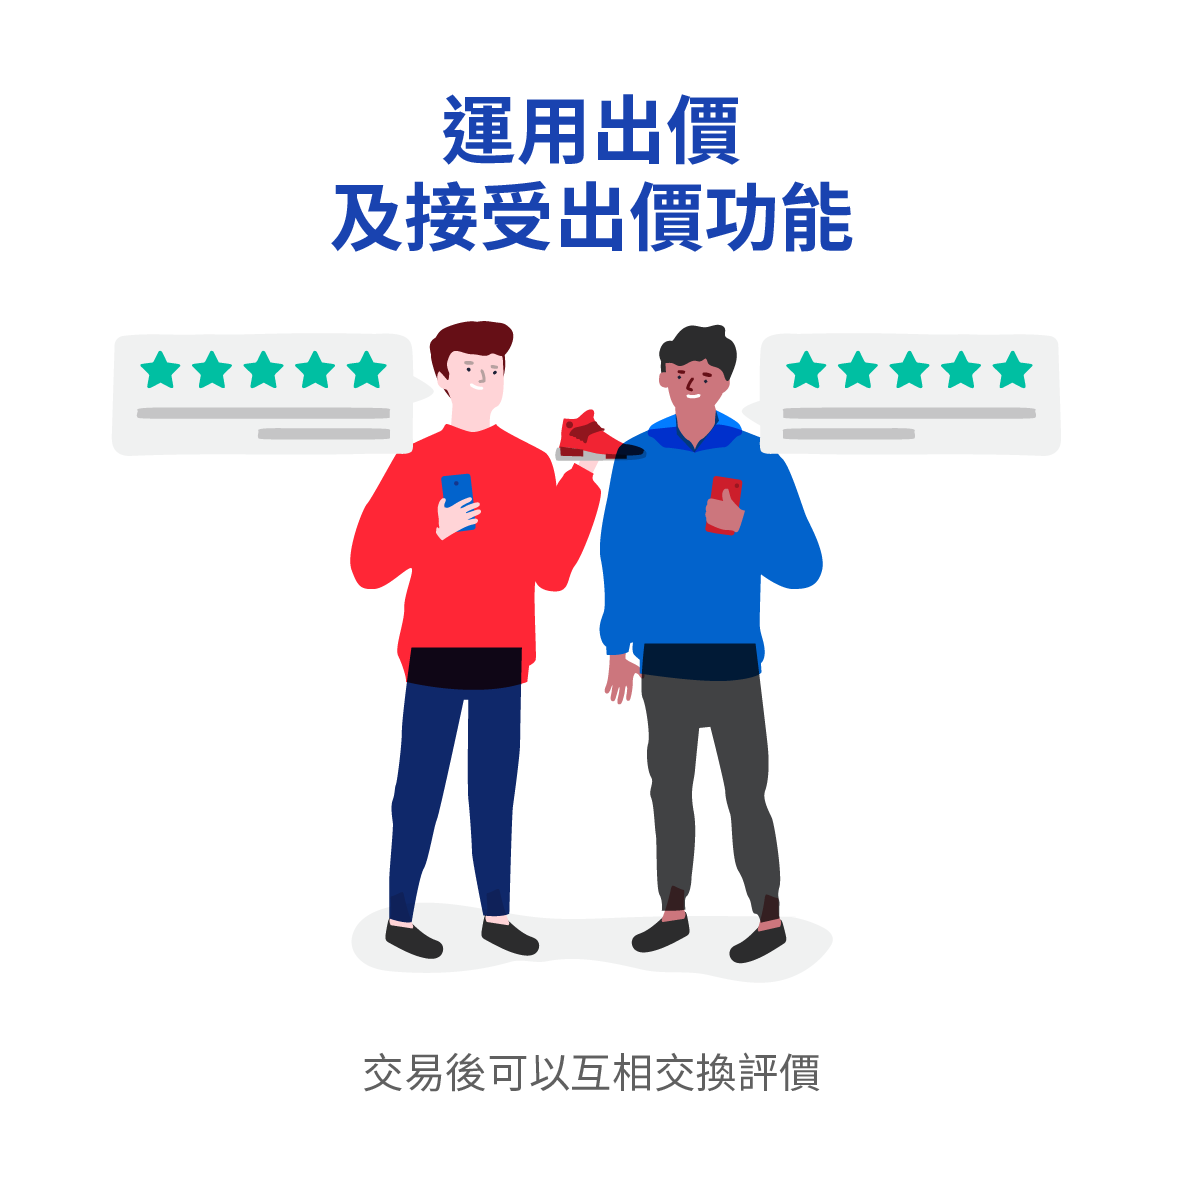 HelpCentre_How-to-deal-safely-on-Carousell_HK-3.png